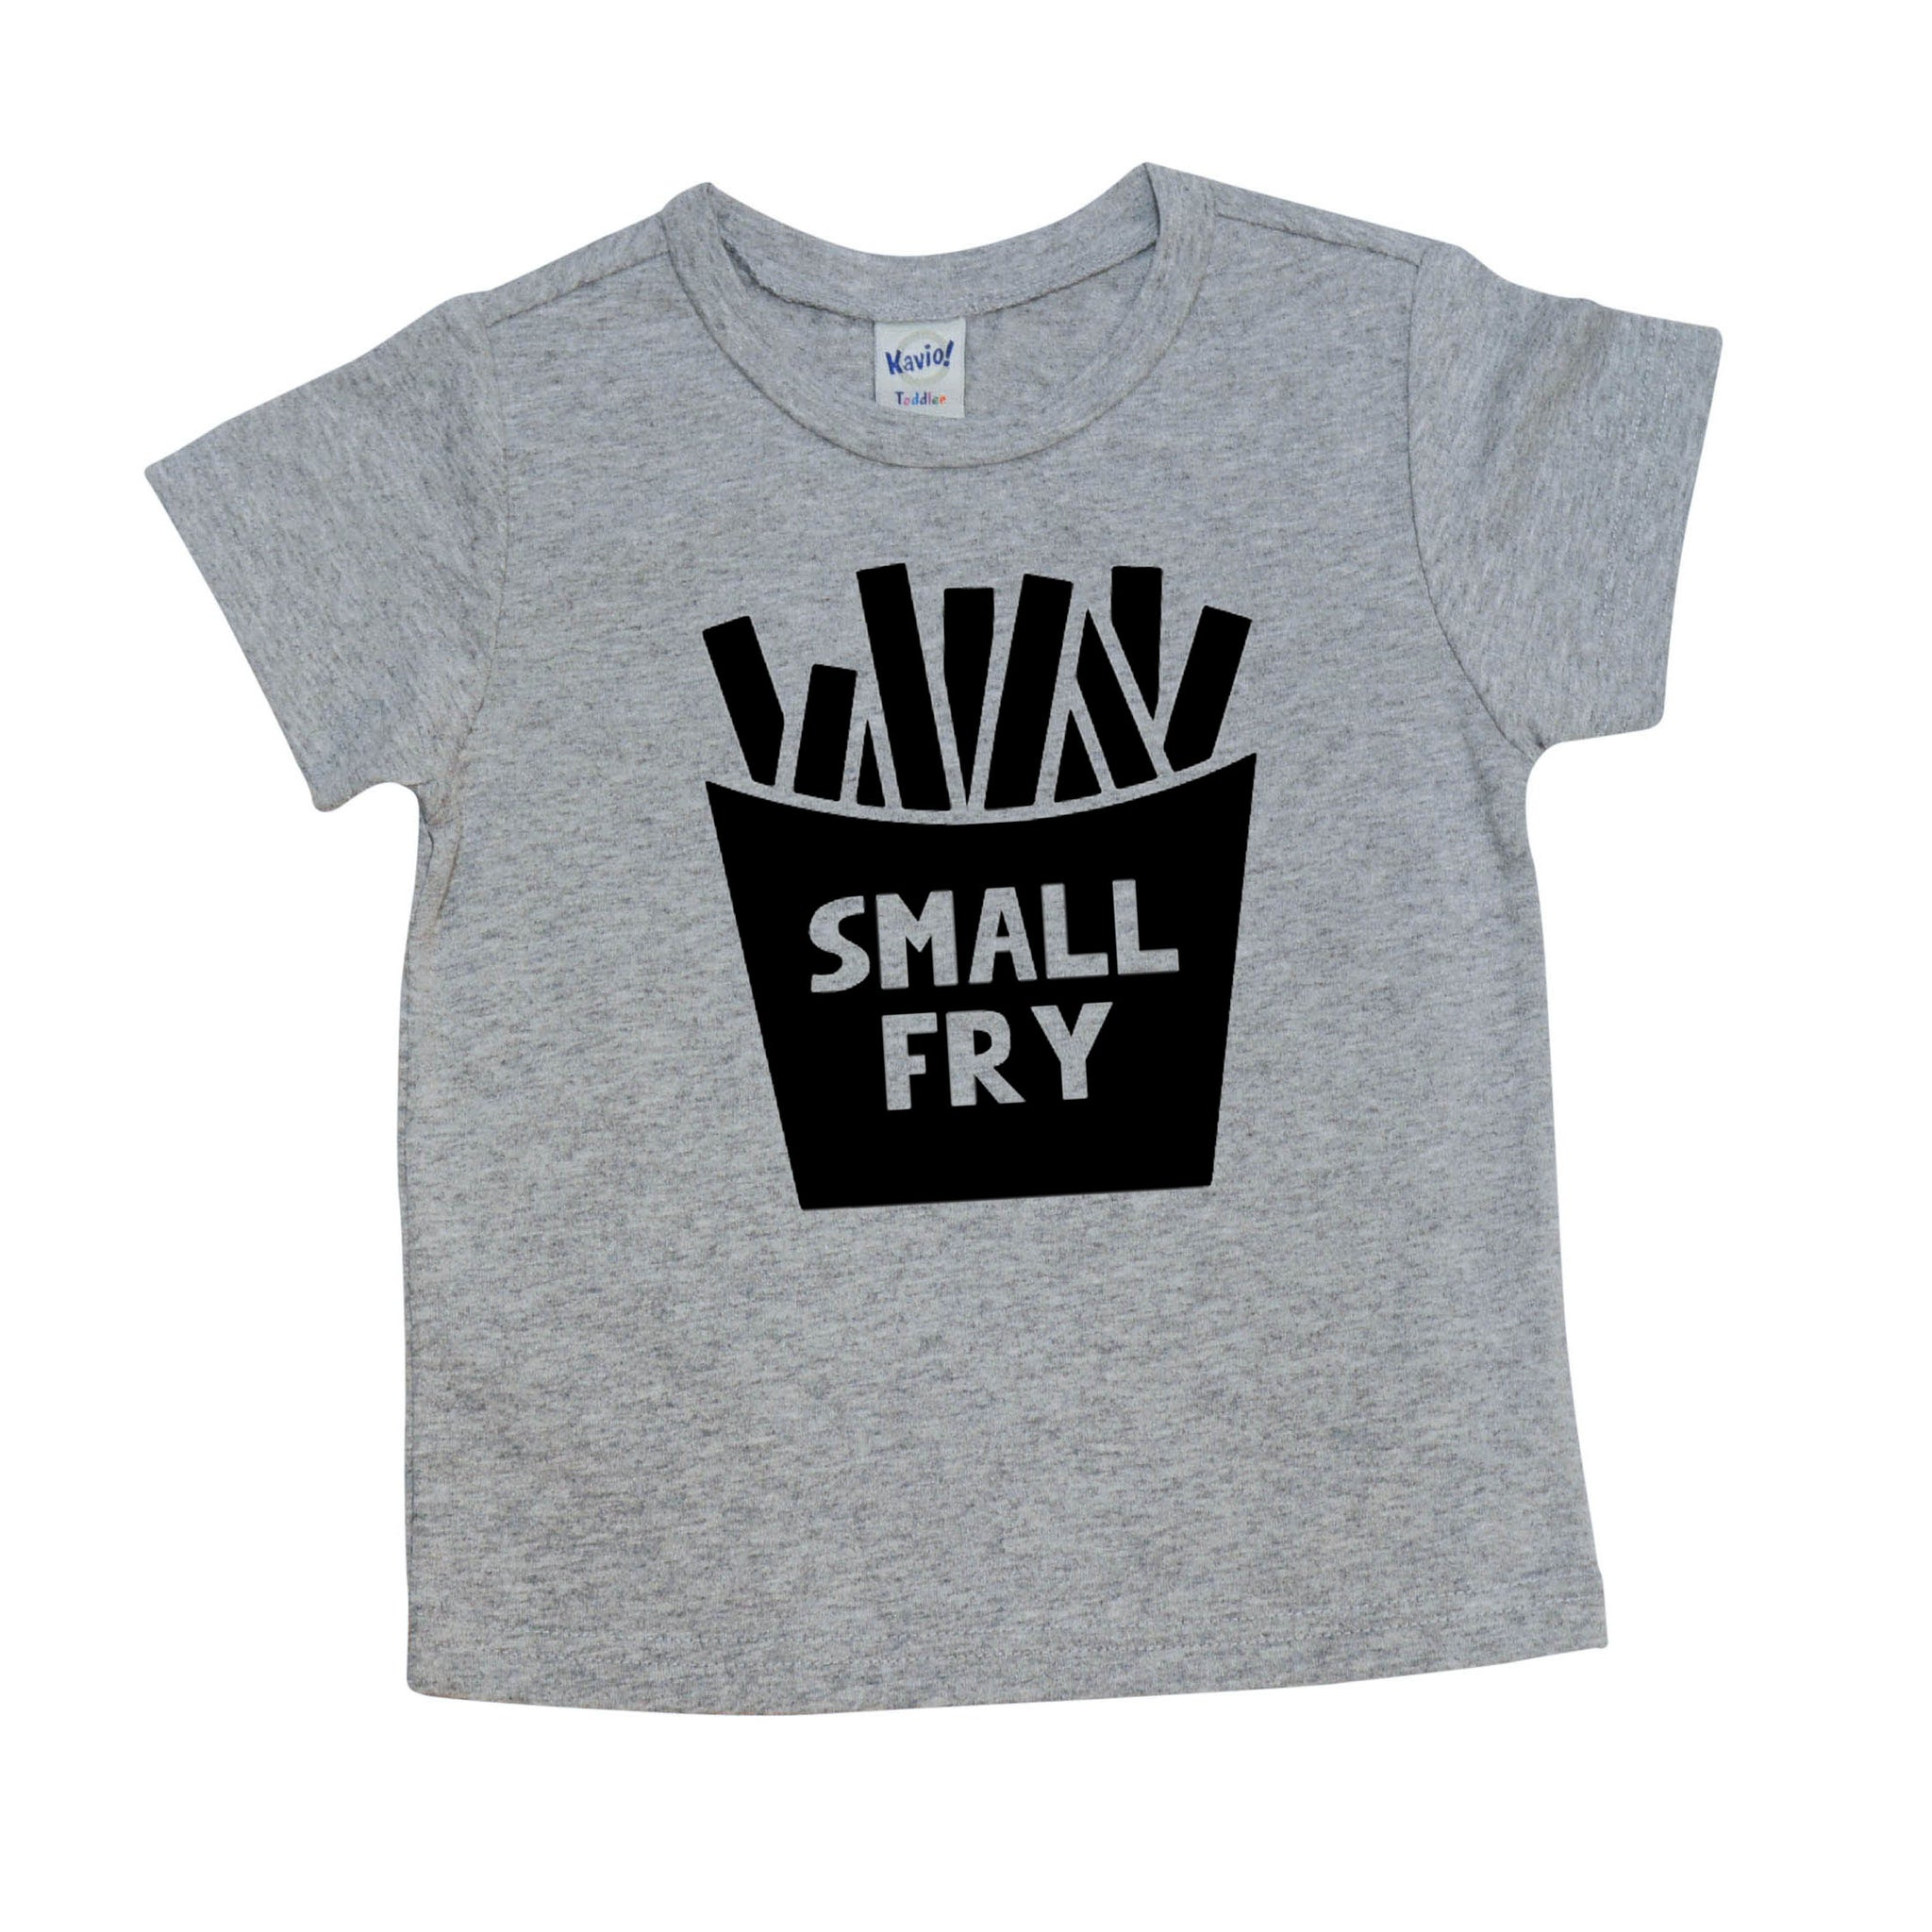 Small Fry | Grey Short or Long Sleeve Shirt or Onesie | Girls, Boys, Siblings, Pregnancy Announcement | 553